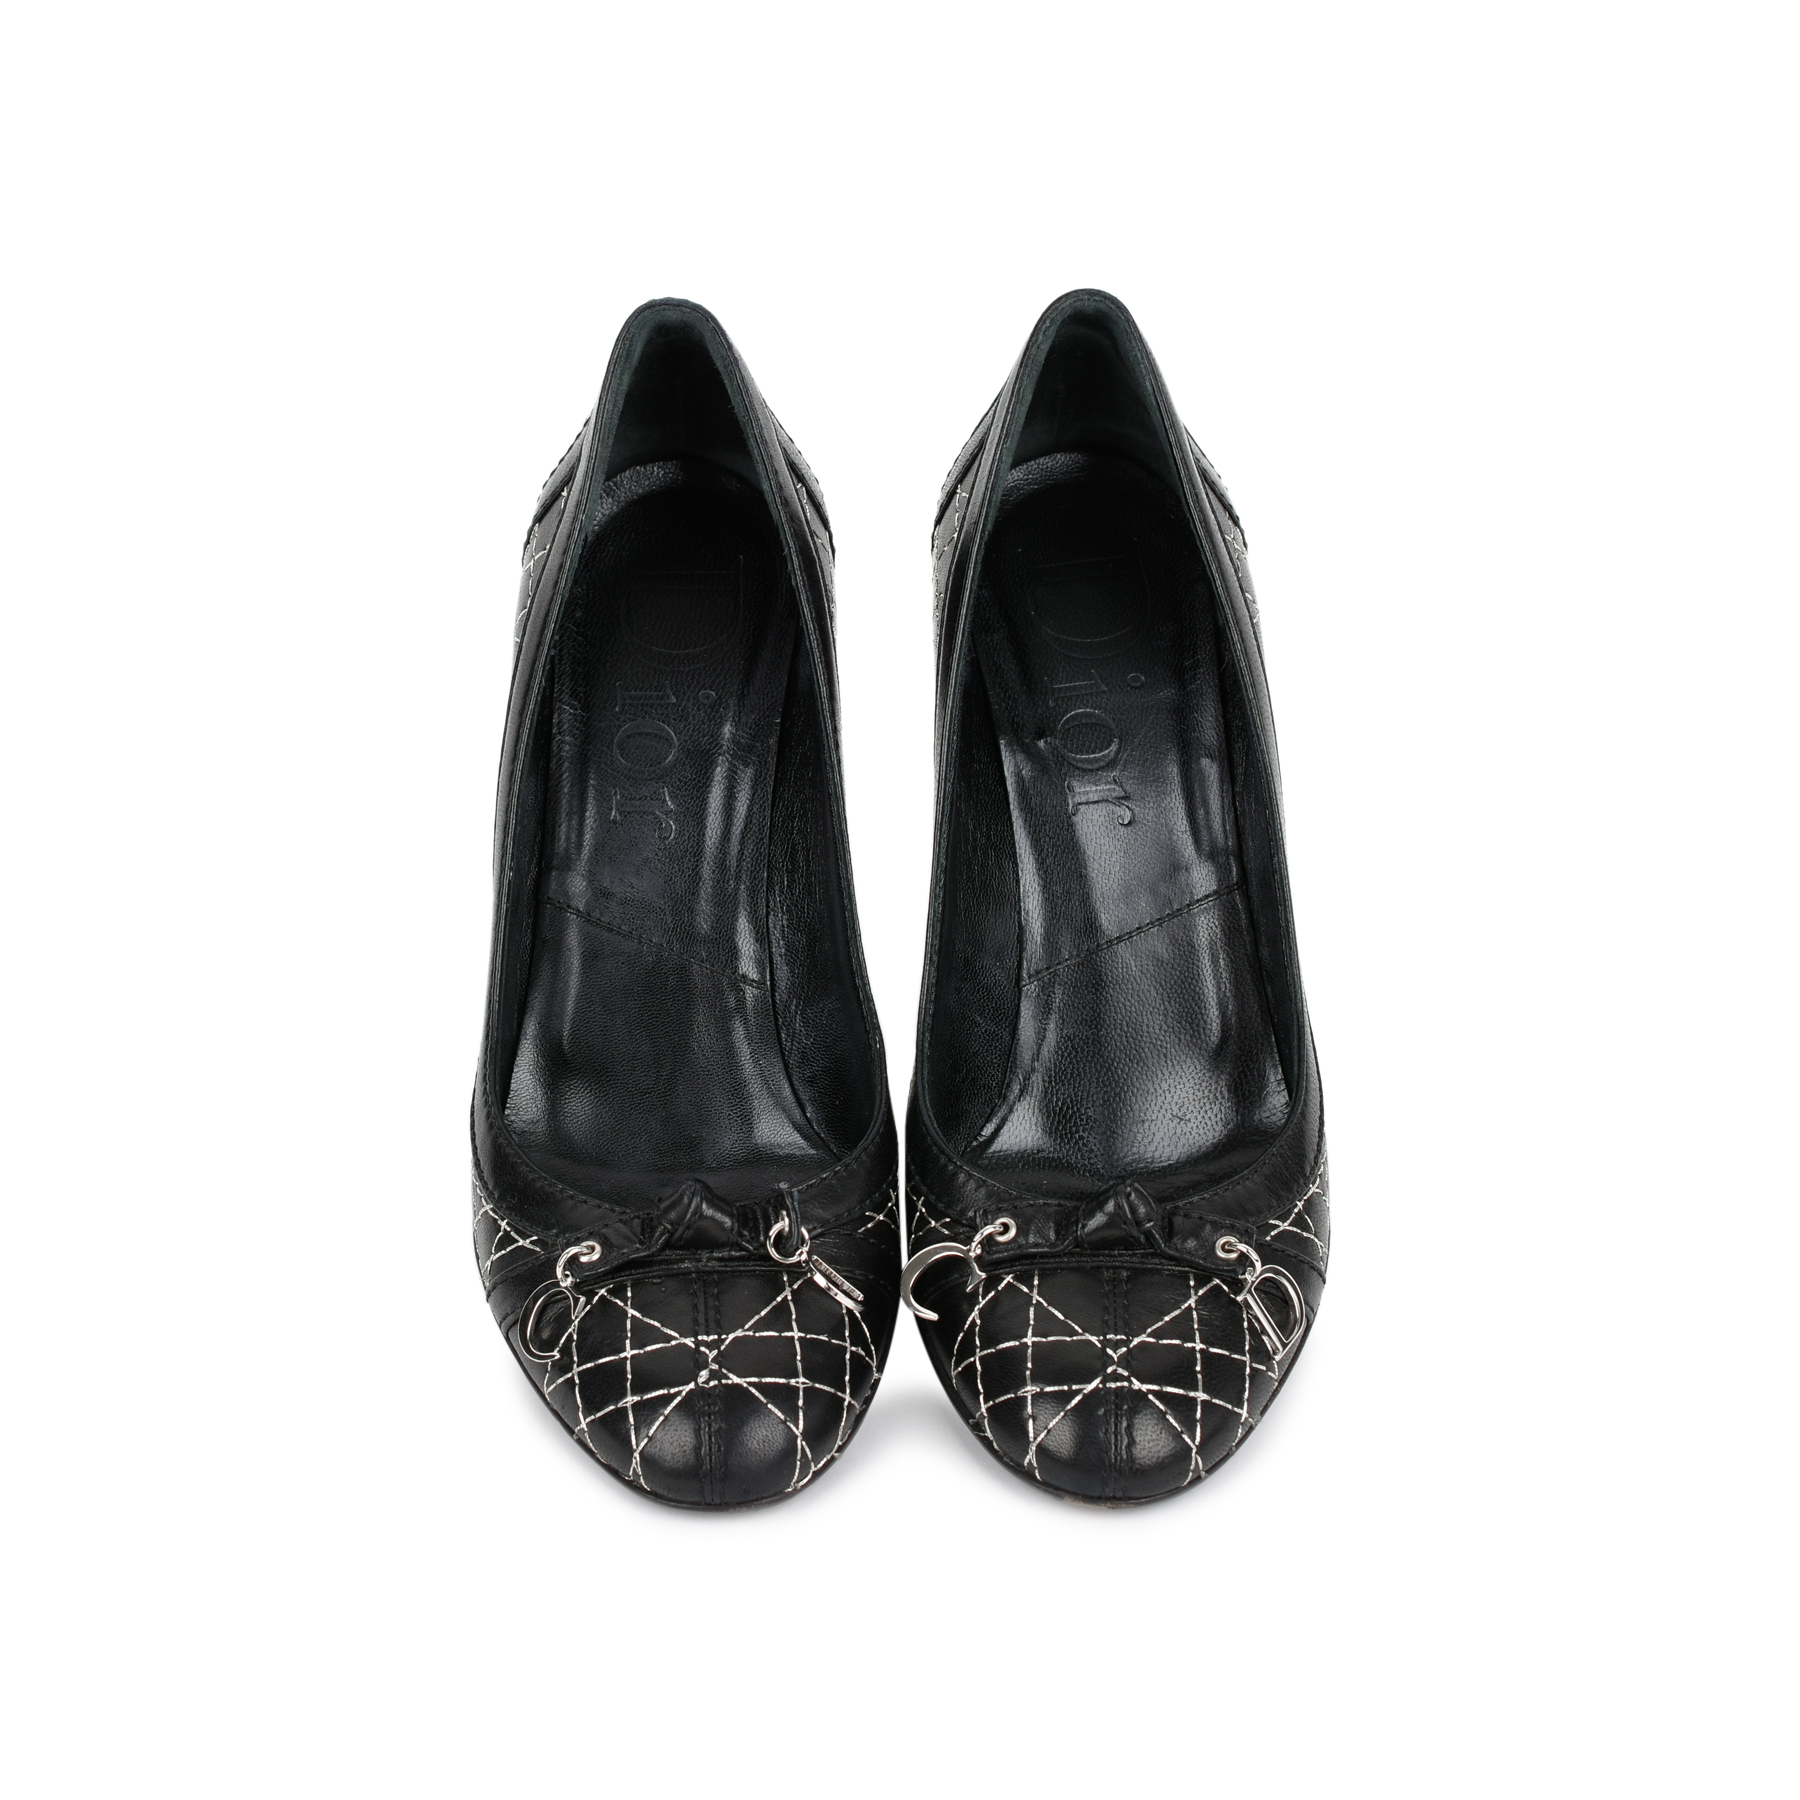 f8866303db Authentic Second Hand Christian Dior Cannage Quilted Pumps (PSS-462-00006)  - THE FIFTH COLLECTION